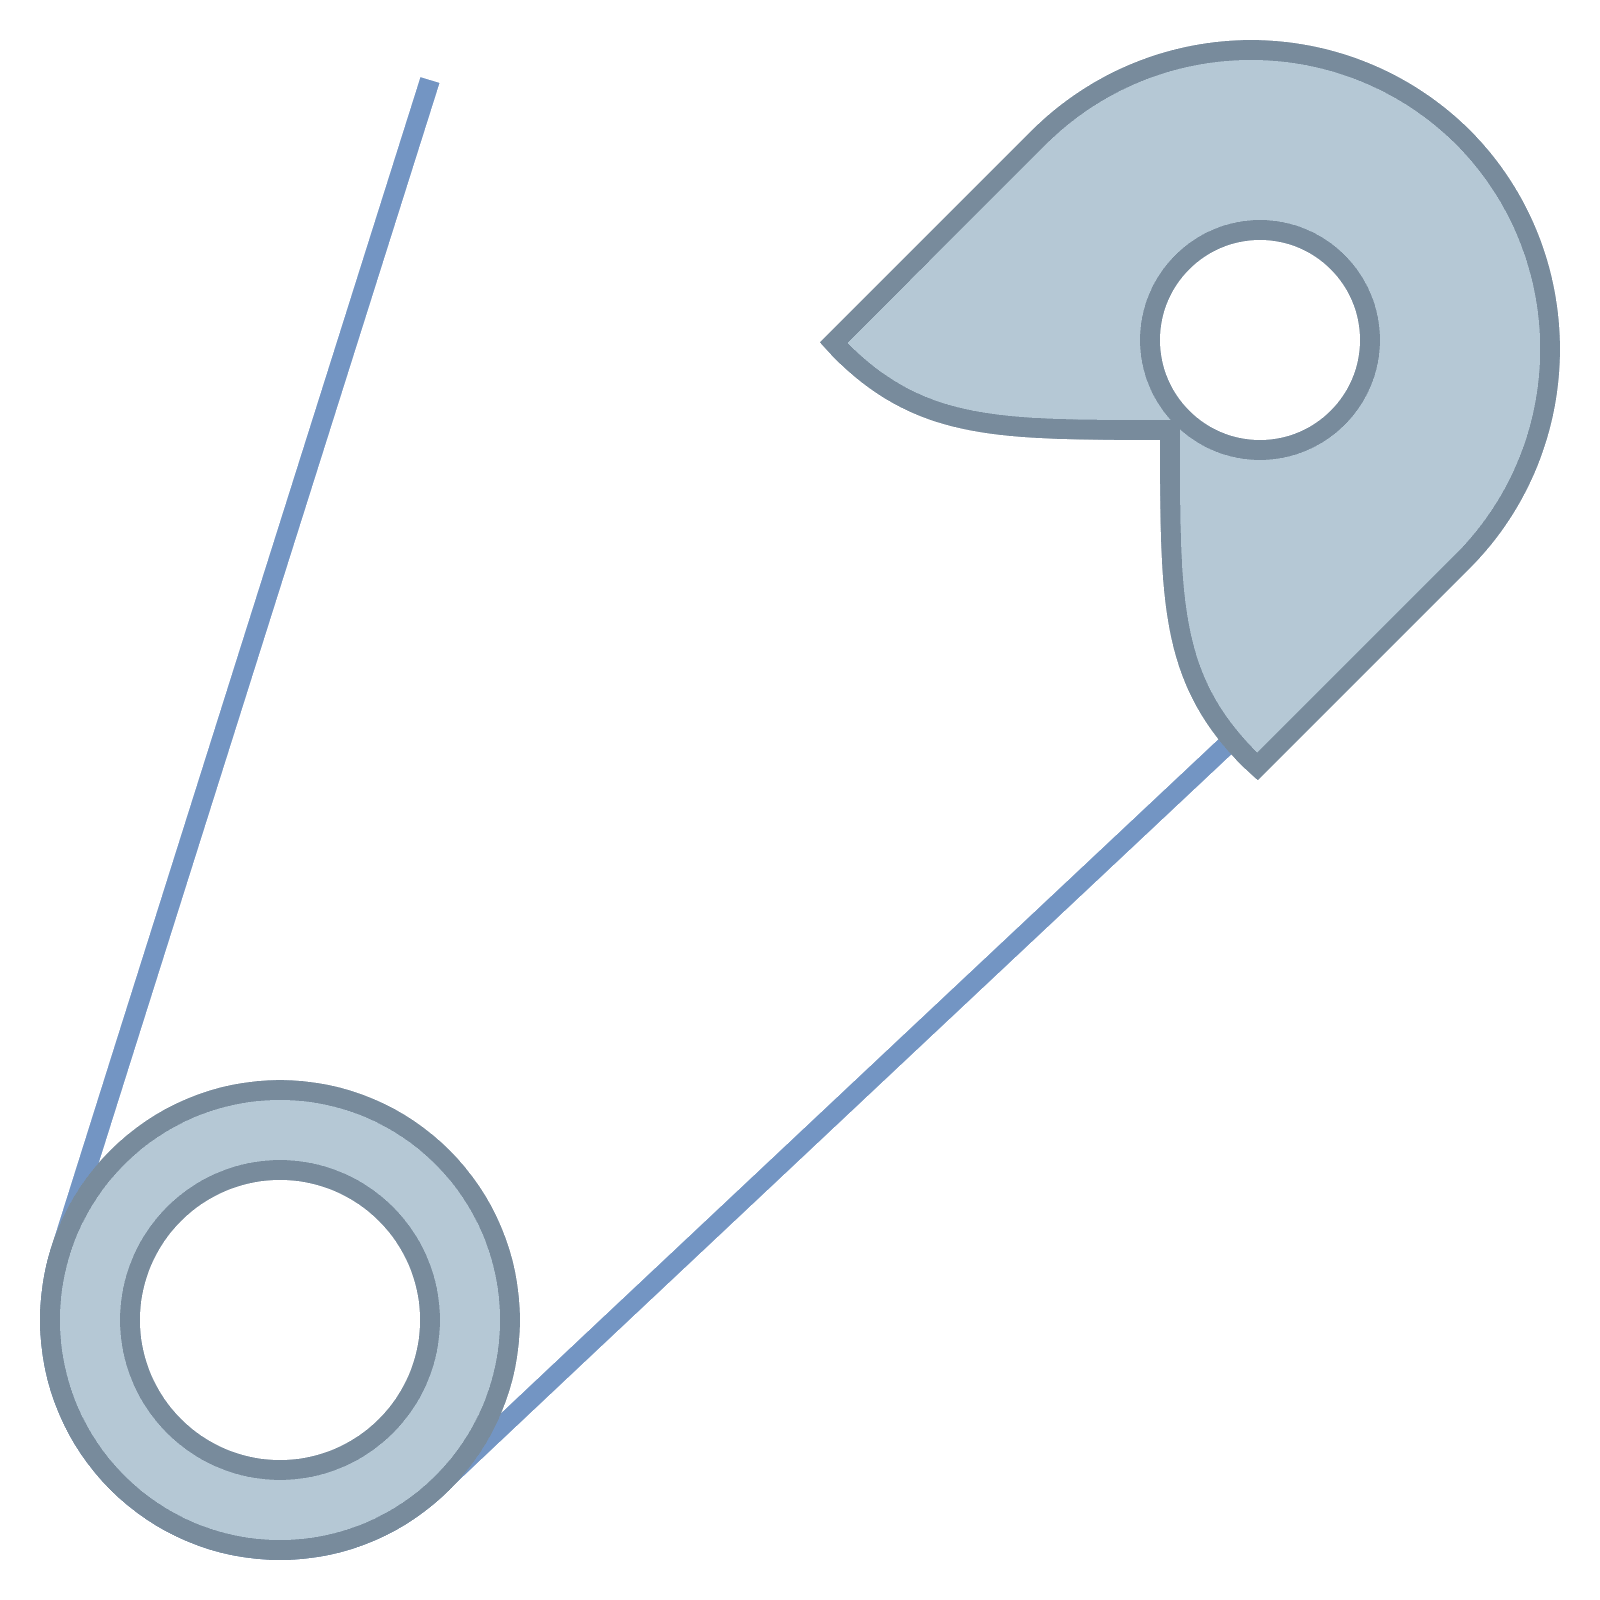 Download Safety Pin PNG Image for Free.